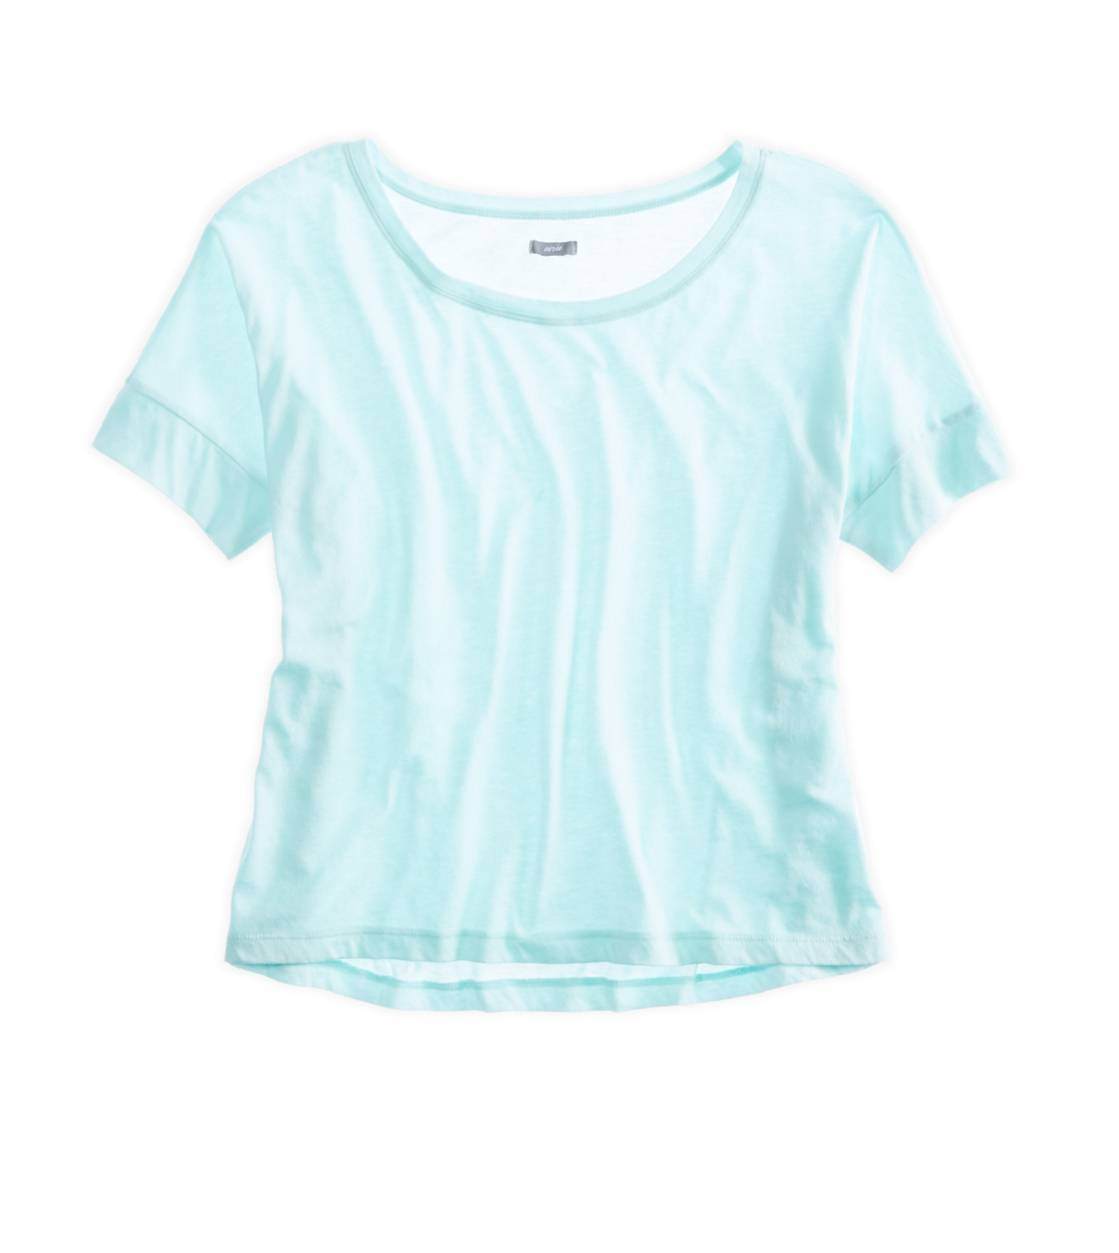 Spring Break Aerie Crop T-Shirt